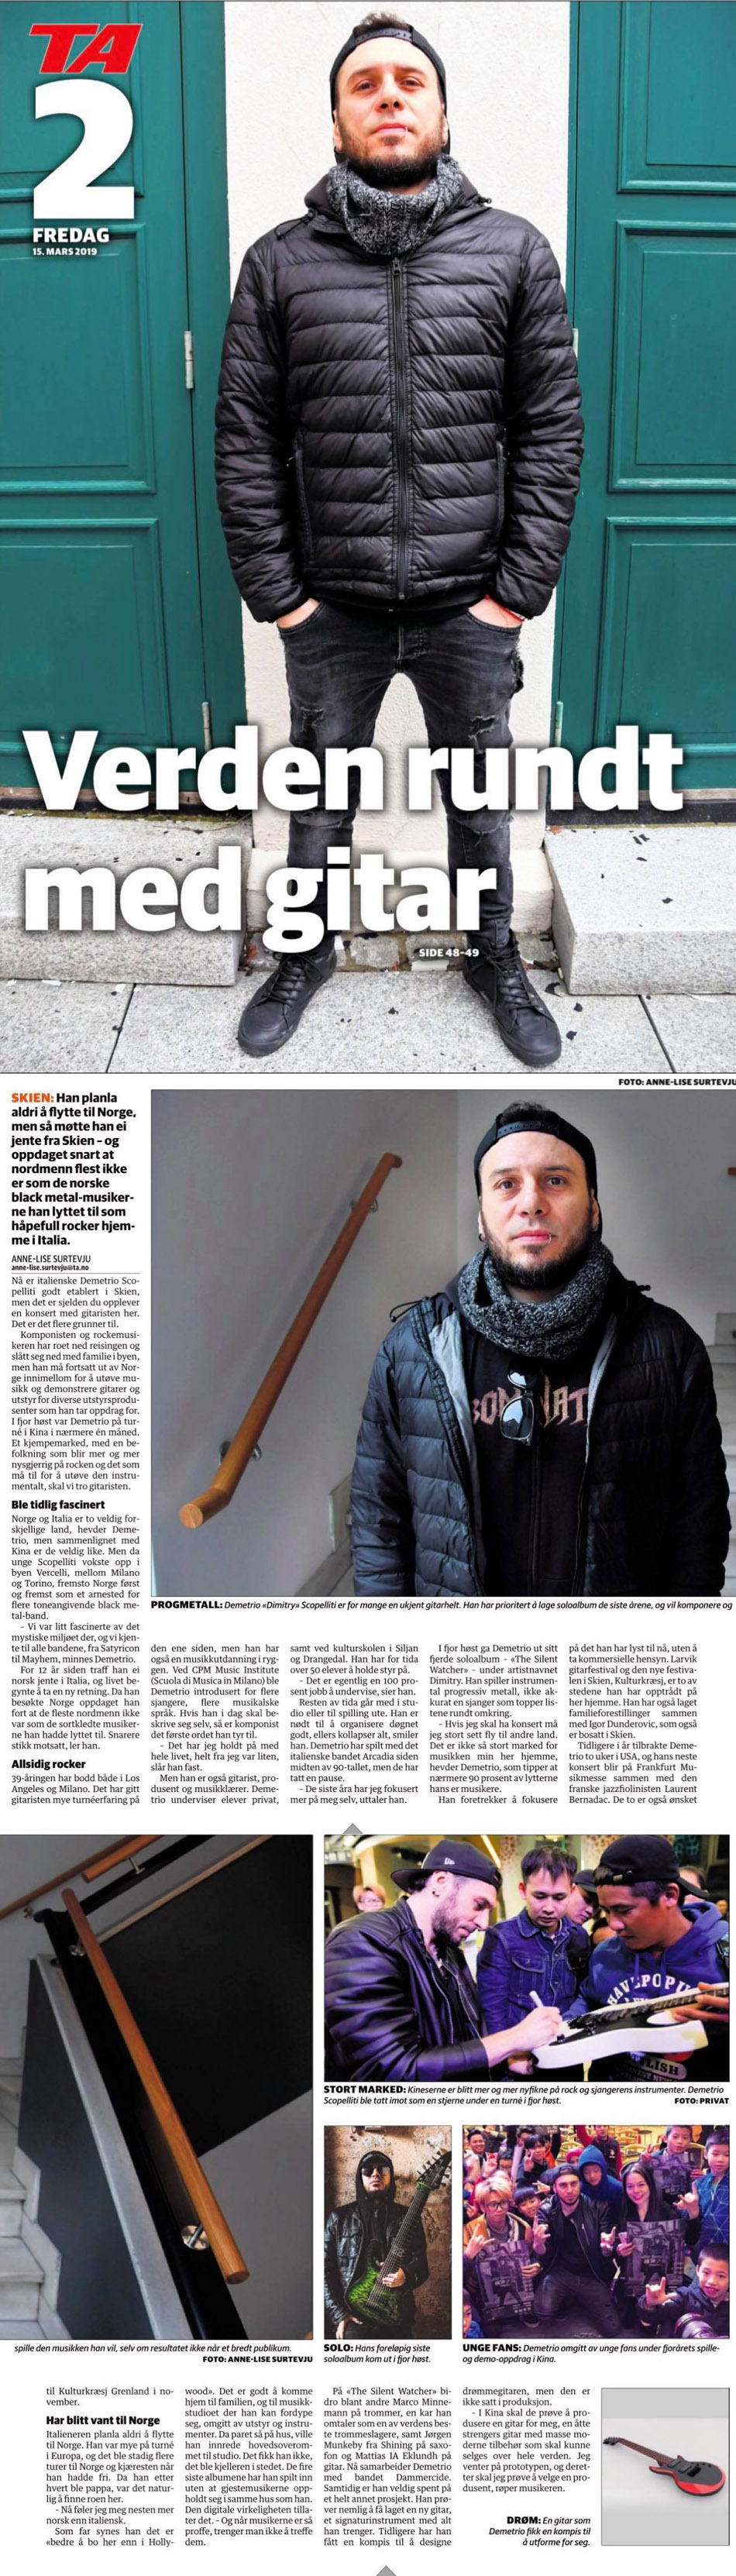 TA, Norwegian newspaper (March 15, 2019) - Verden <br>rundt med gitar (Interview with Dimitry)